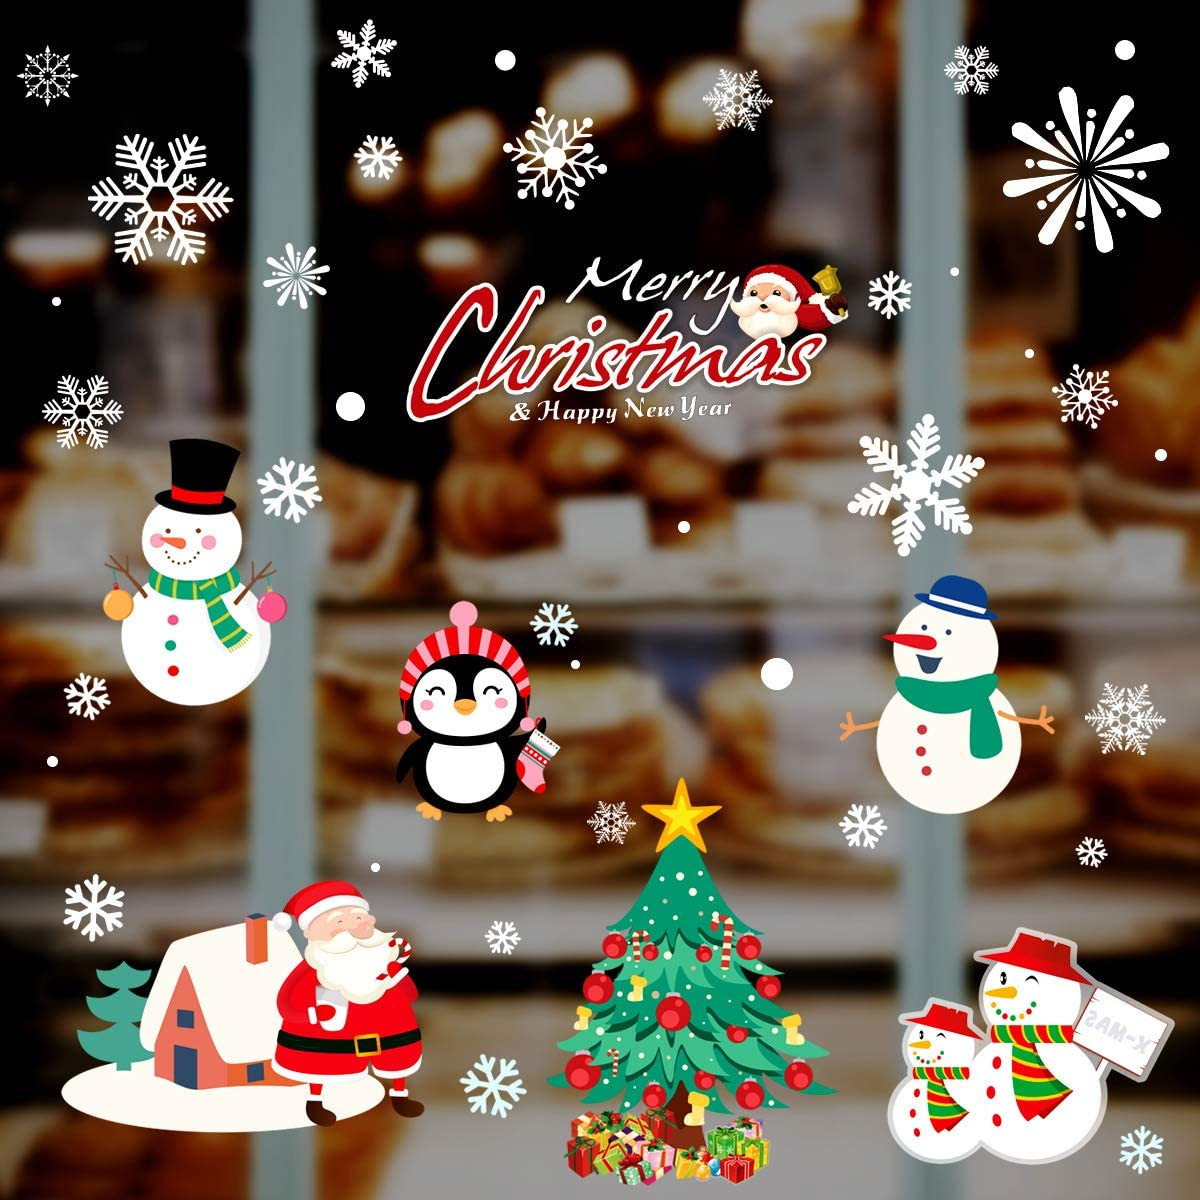 Max 43% OFF 195 PCS Snowflakes Christmas Window Stickers Decal Clings Xmas specialty shop